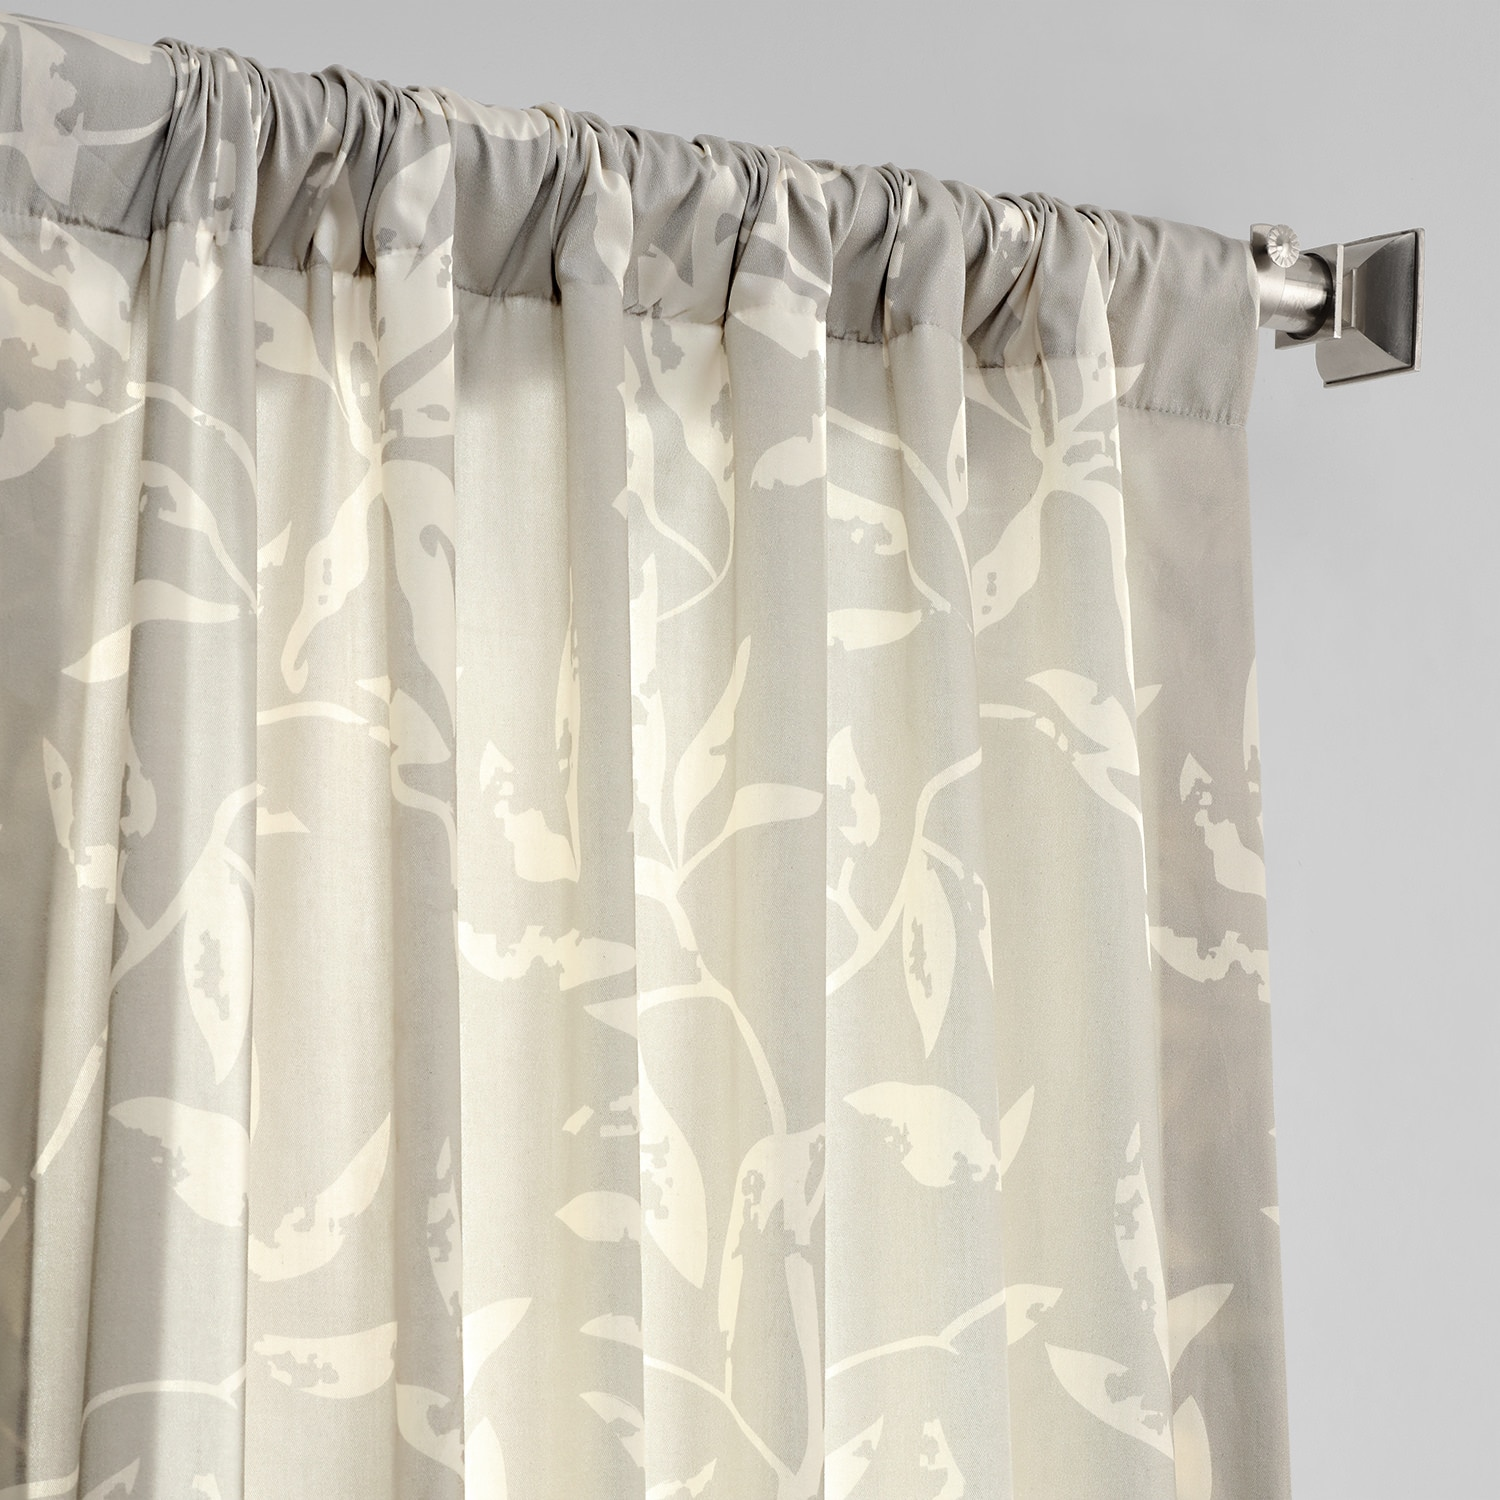 Bamboo Tan Digital Printed Cotton Twill Curtain